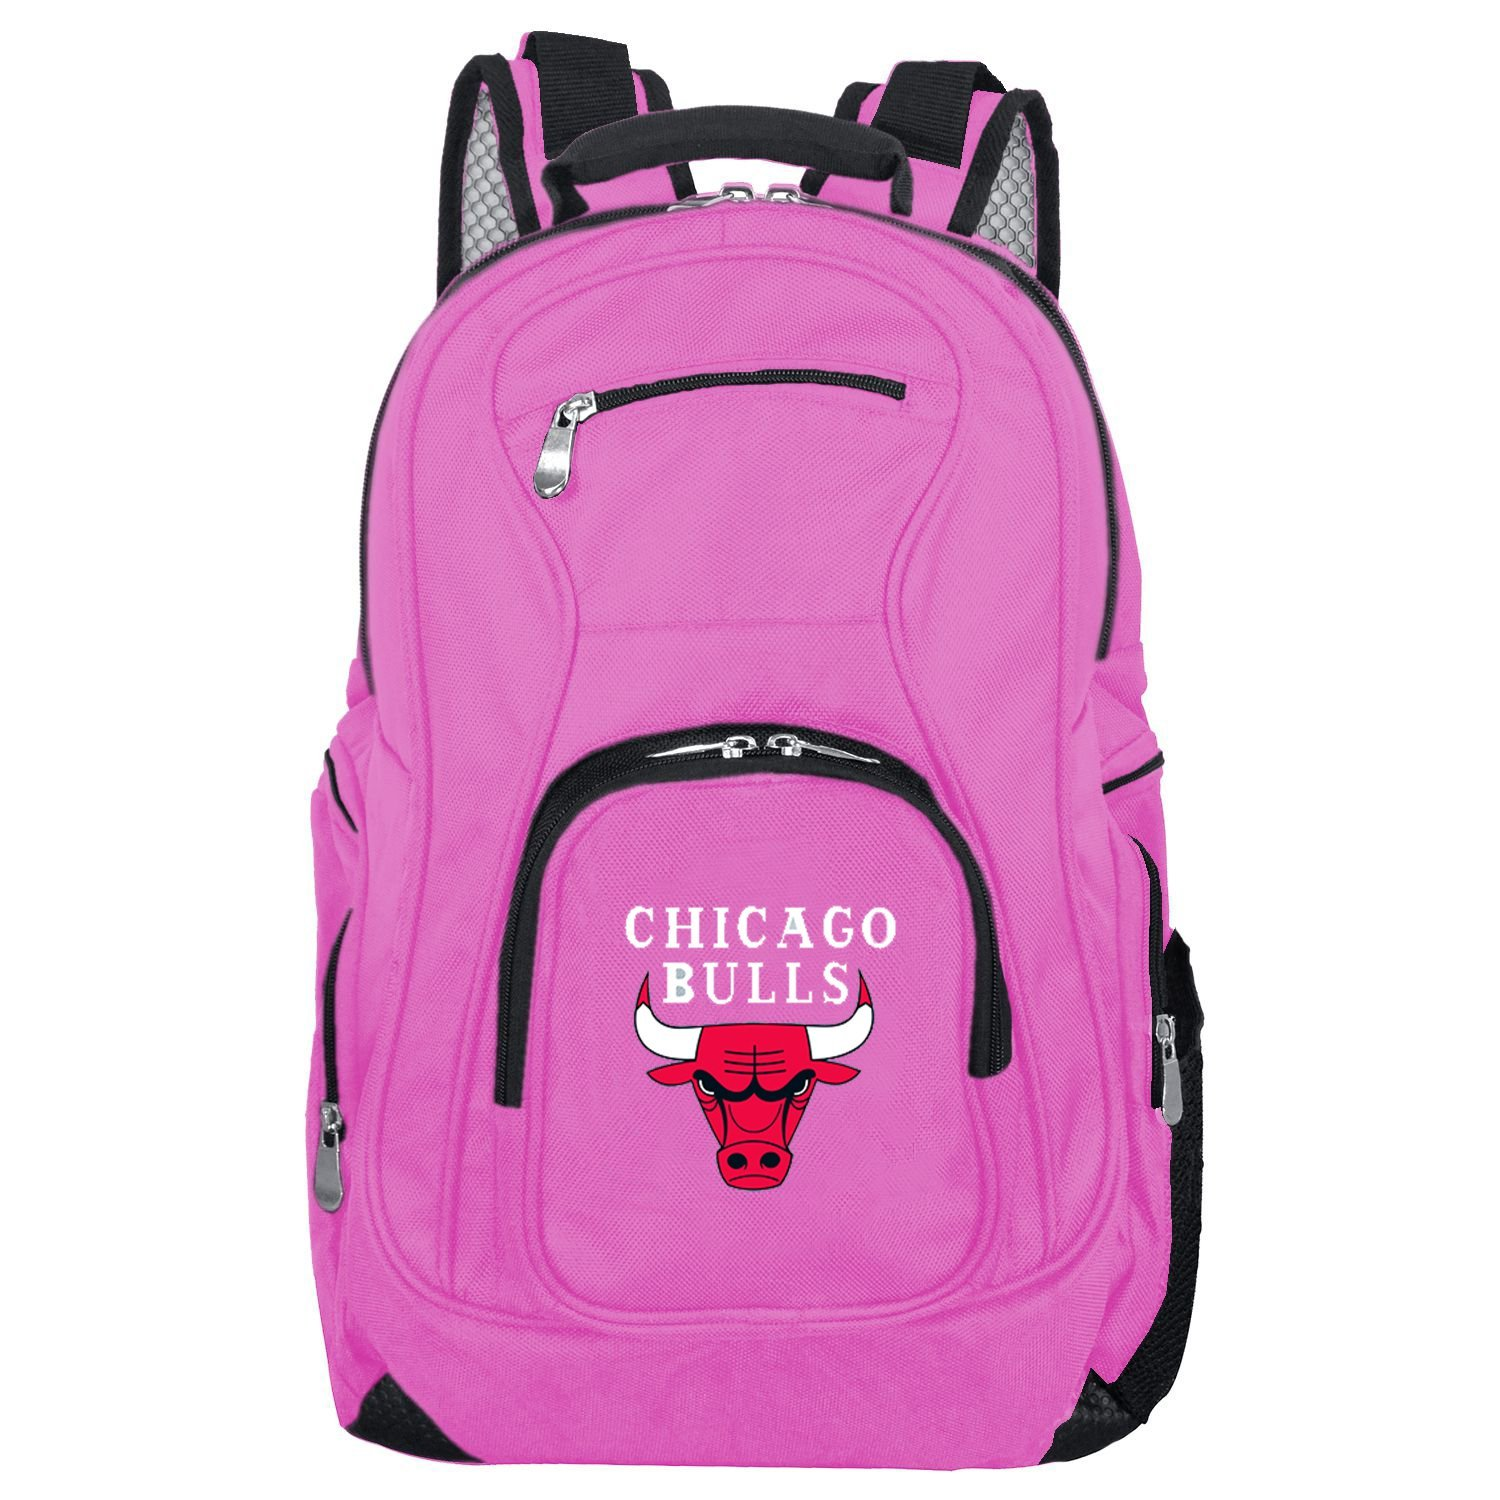 NBA Chicago Bulls Voyager Laptop Backpack, 19-inches, Pink